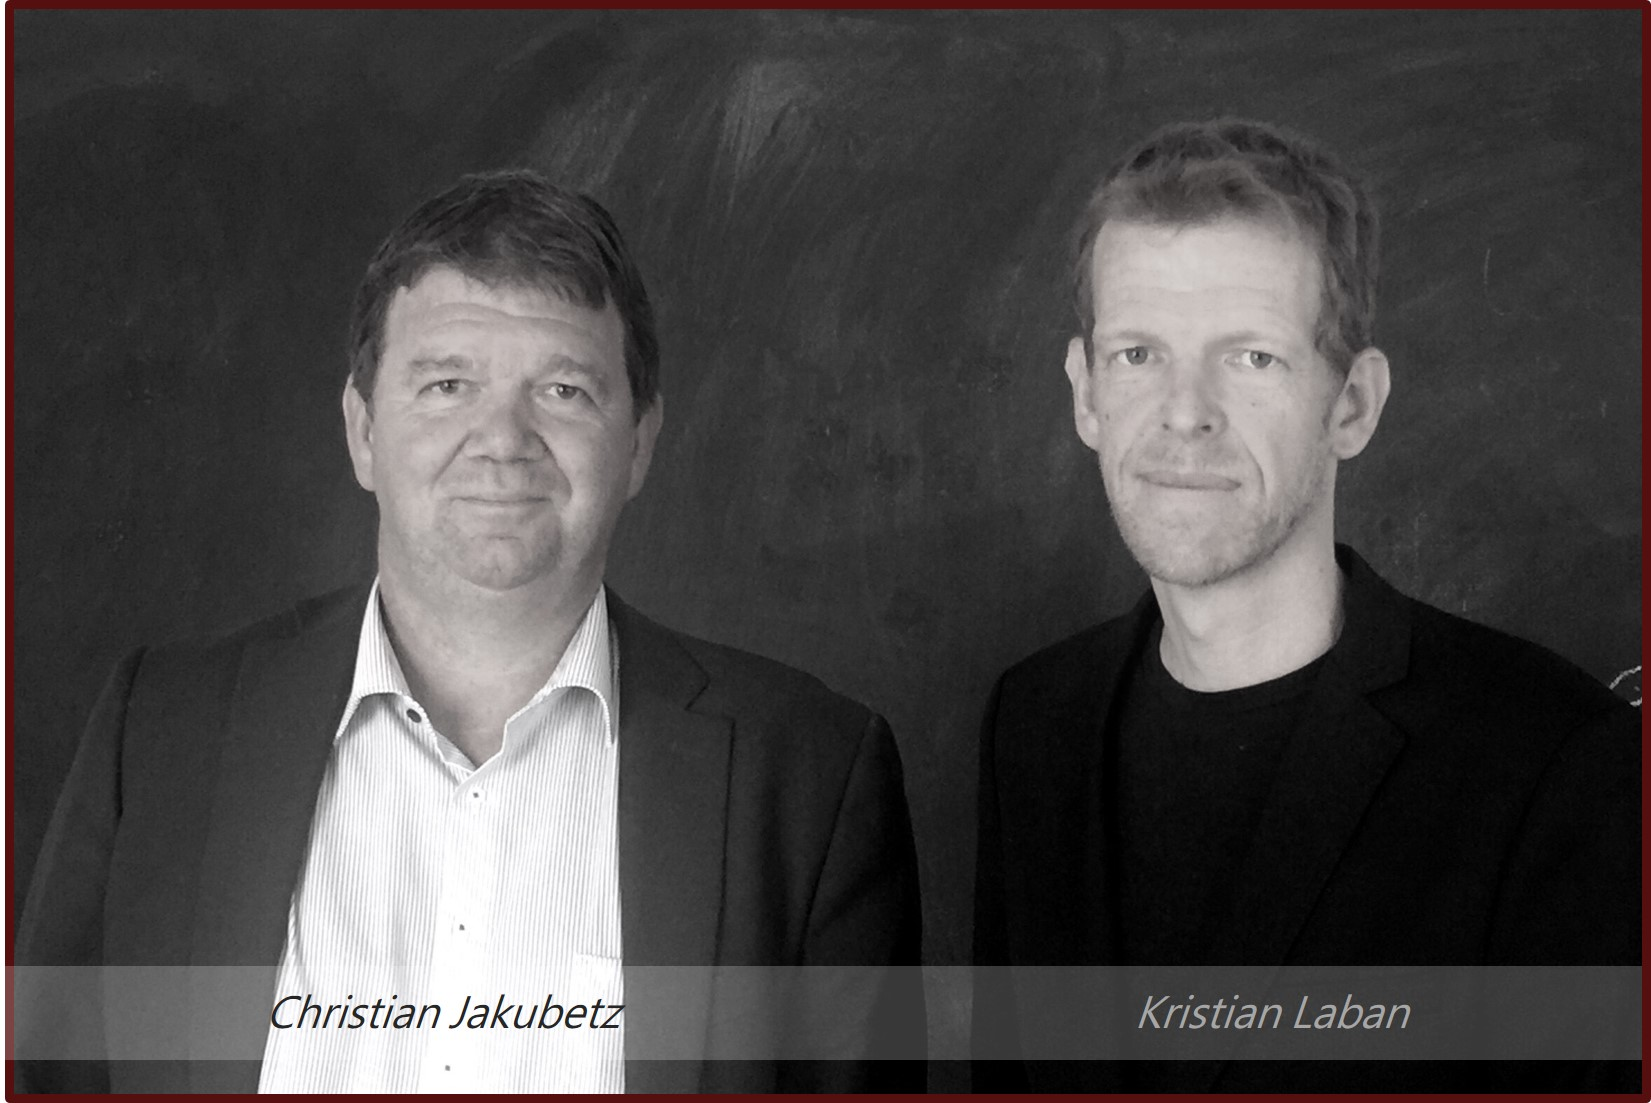 Christian Jakubetz und Kristian Laban Owner of Jakubetz & Laban 2017